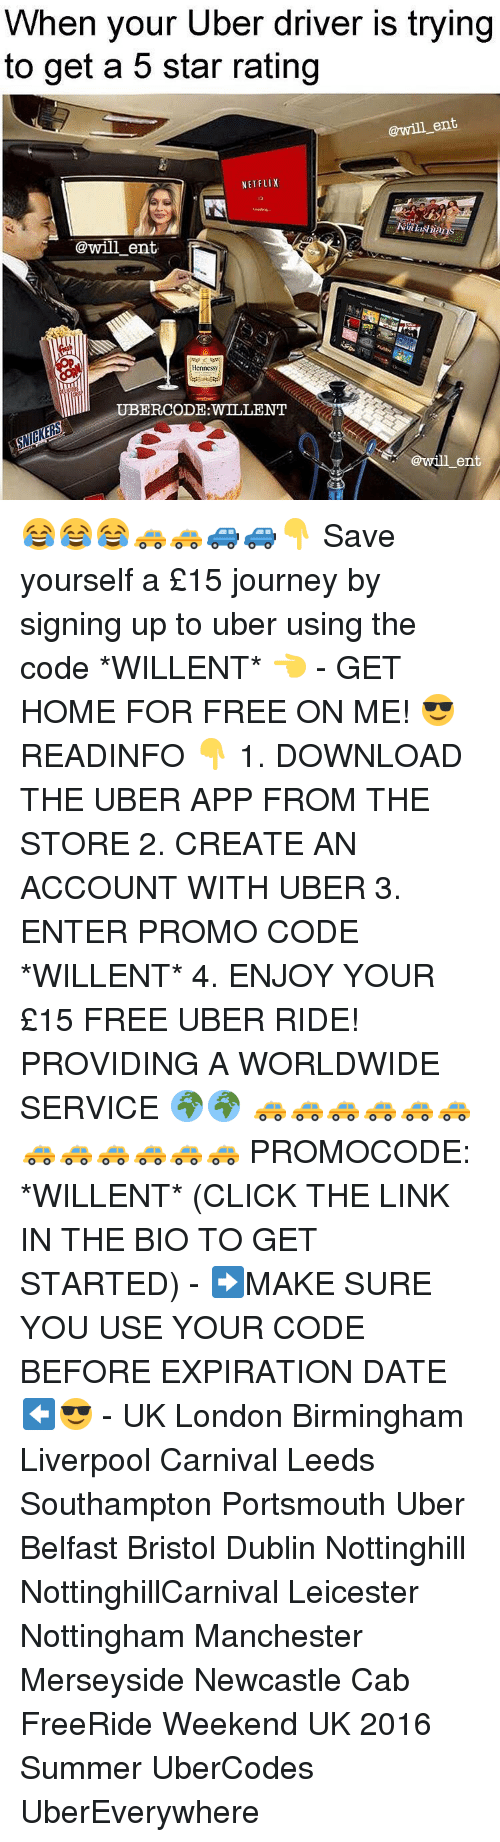 Rateing: When your Uber driver is trying  to get a 5 star rating  @will ent  NETFLIX  @will ent.  Hennessy  @will ent 😂😂😂🚕🚕🚙🚙👇 Save yourself a £15 journey by signing up to uber using the code *WILLENT* 👈 - GET HOME FOR FREE ON ME! 😎 READINFO 👇 1. DOWNLOAD THE UBER APP FROM THE STORE 2. CREATE AN ACCOUNT WITH UBER 3. ENTER PROMO CODE *WILLENT* 4. ENJOY YOUR £15 FREE UBER RIDE! PROVIDING A WORLDWIDE SERVICE 🌍🌍 🚕🚕🚕🚕🚕🚕🚕🚕🚕🚕🚕🚕 PROMOCODE: *WILLENT* (CLICK THE LINK IN THE BIO TO GET STARTED) - ➡️MAKE SURE YOU USE YOUR CODE BEFORE EXPIRATION DATE ⬅️😎 - UK London Birmingham Liverpool Carnival Leeds Southampton Portsmouth Uber Belfast Bristol Dublin Nottinghill NottinghillCarnival Leicester Nottingham Manchester Merseyside Newcastle Cab FreeRide Weekend UK 2016 Summer UberCodes UberEverywhere